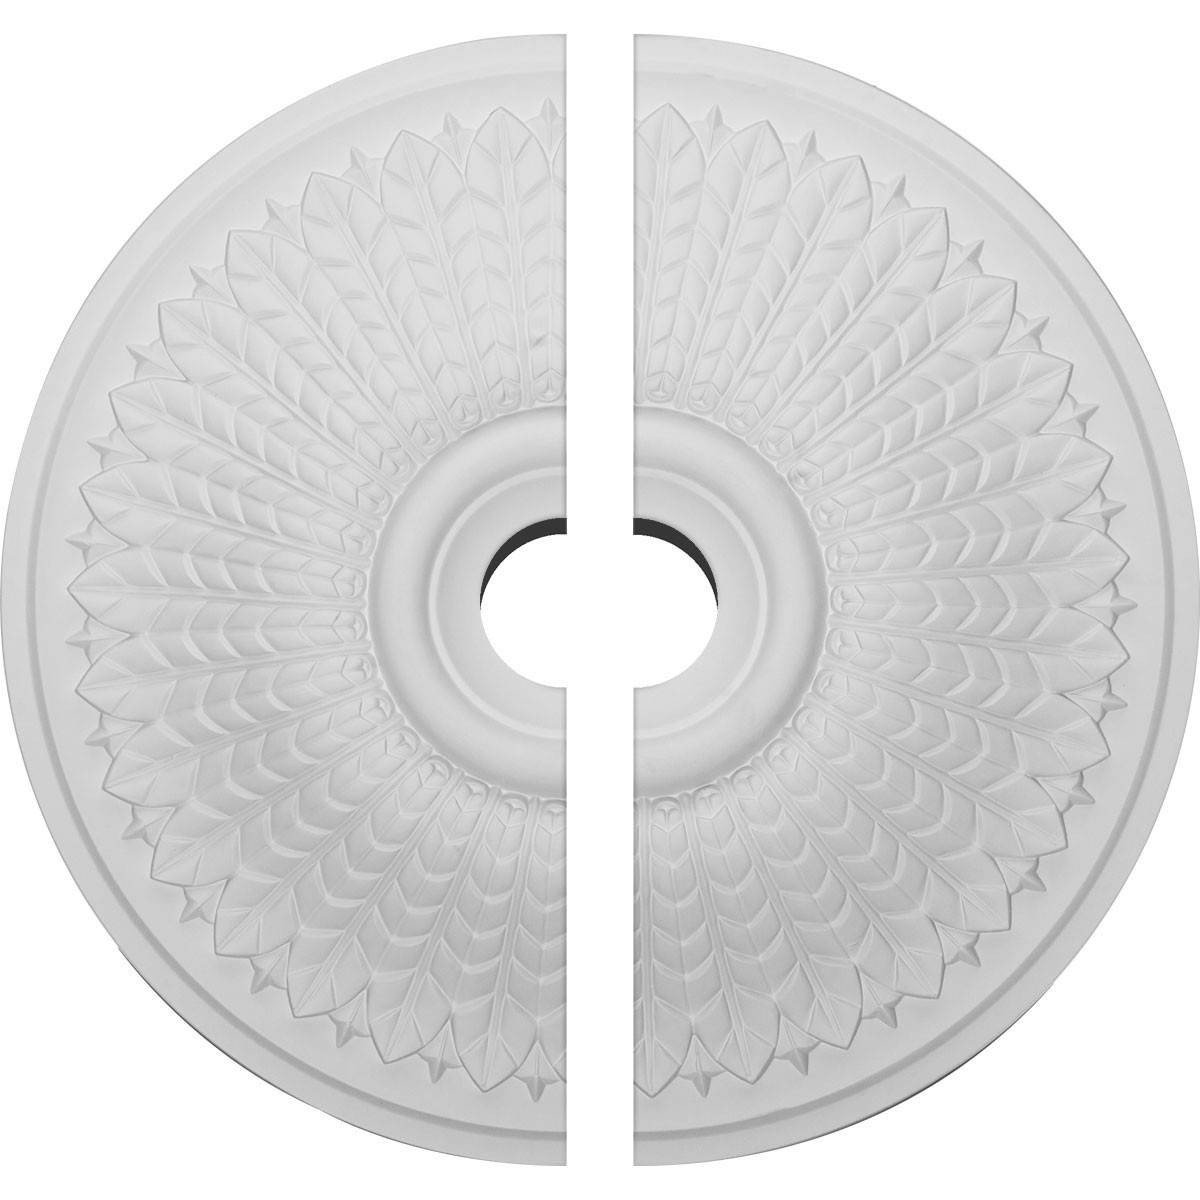 """EM-CM23MO2-03500 - 23 1/2""""OD x 3 1/2""""ID x 3 1/2""""P Modena Ceiling Medallion, Two Piece (Fits Canopies up to 5 1/4"""")"""